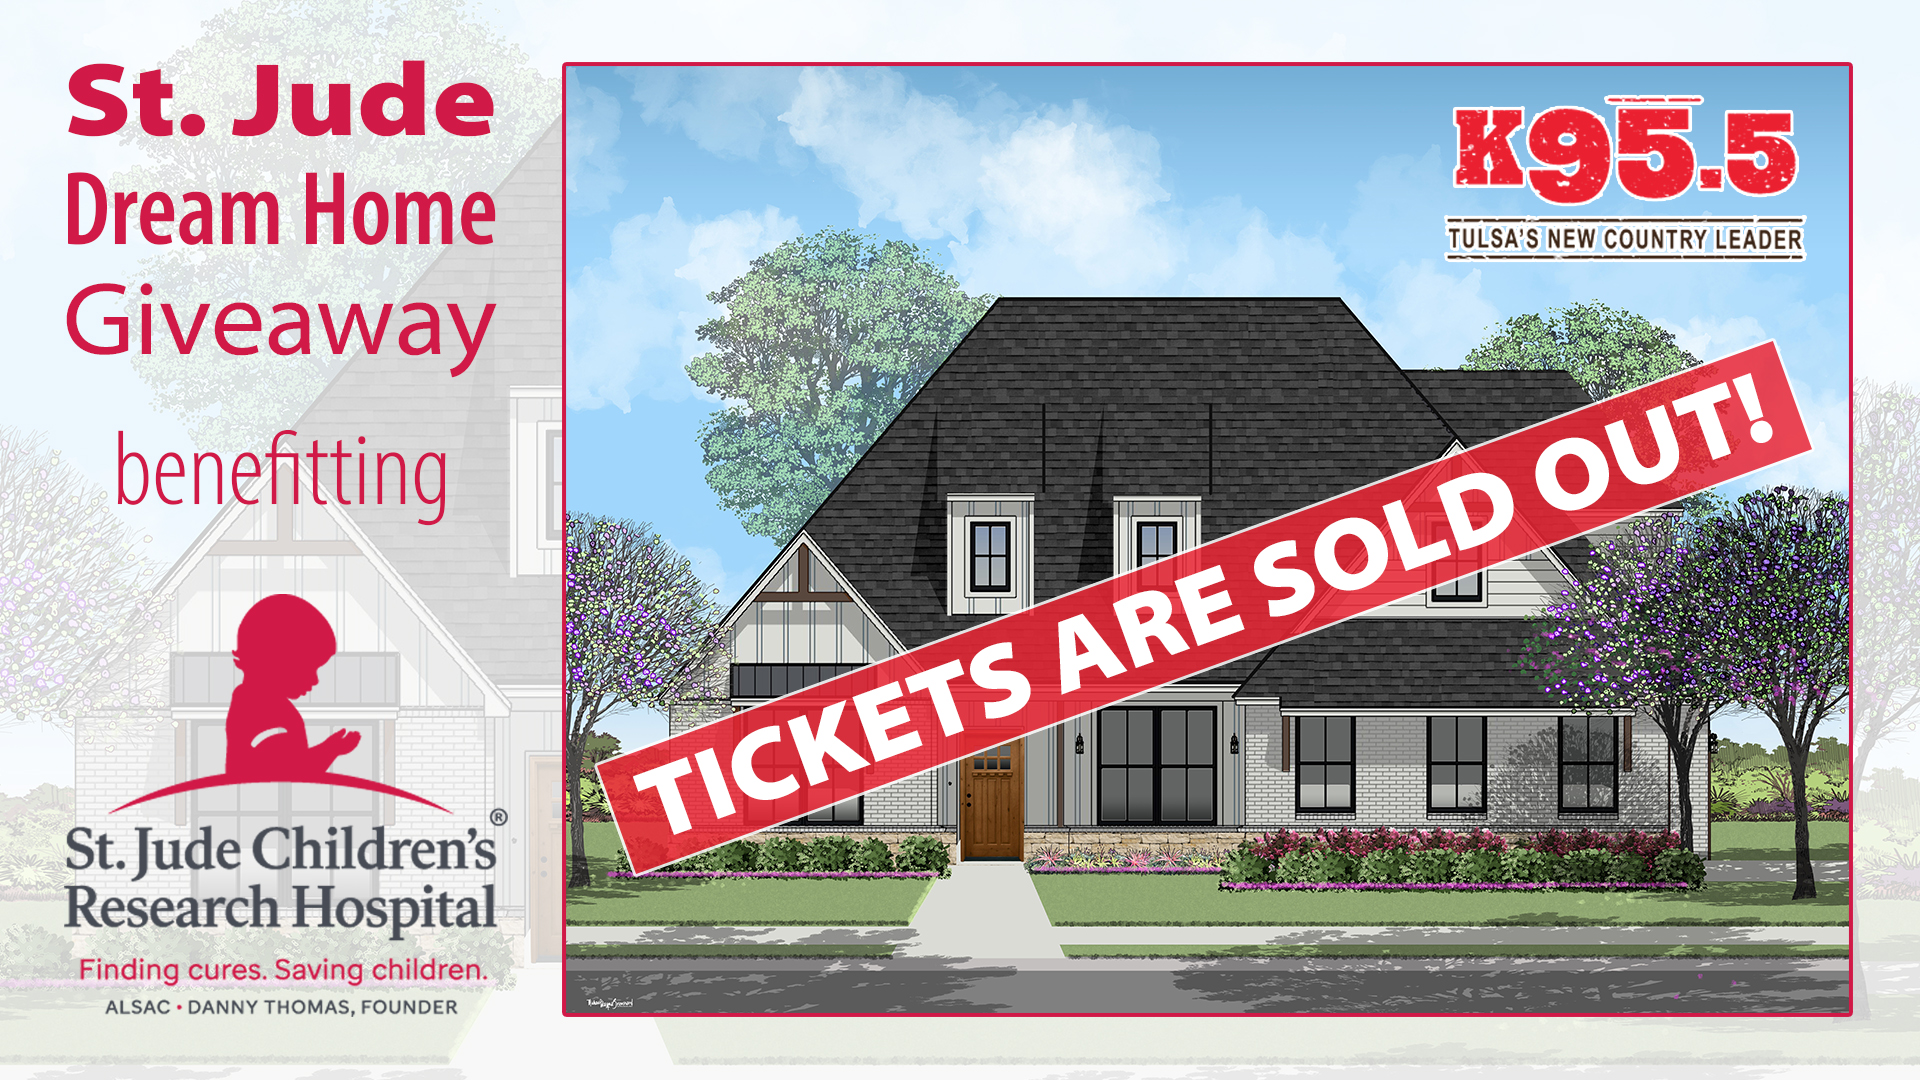 K95.5 St. Jude Dream Home Giveaway